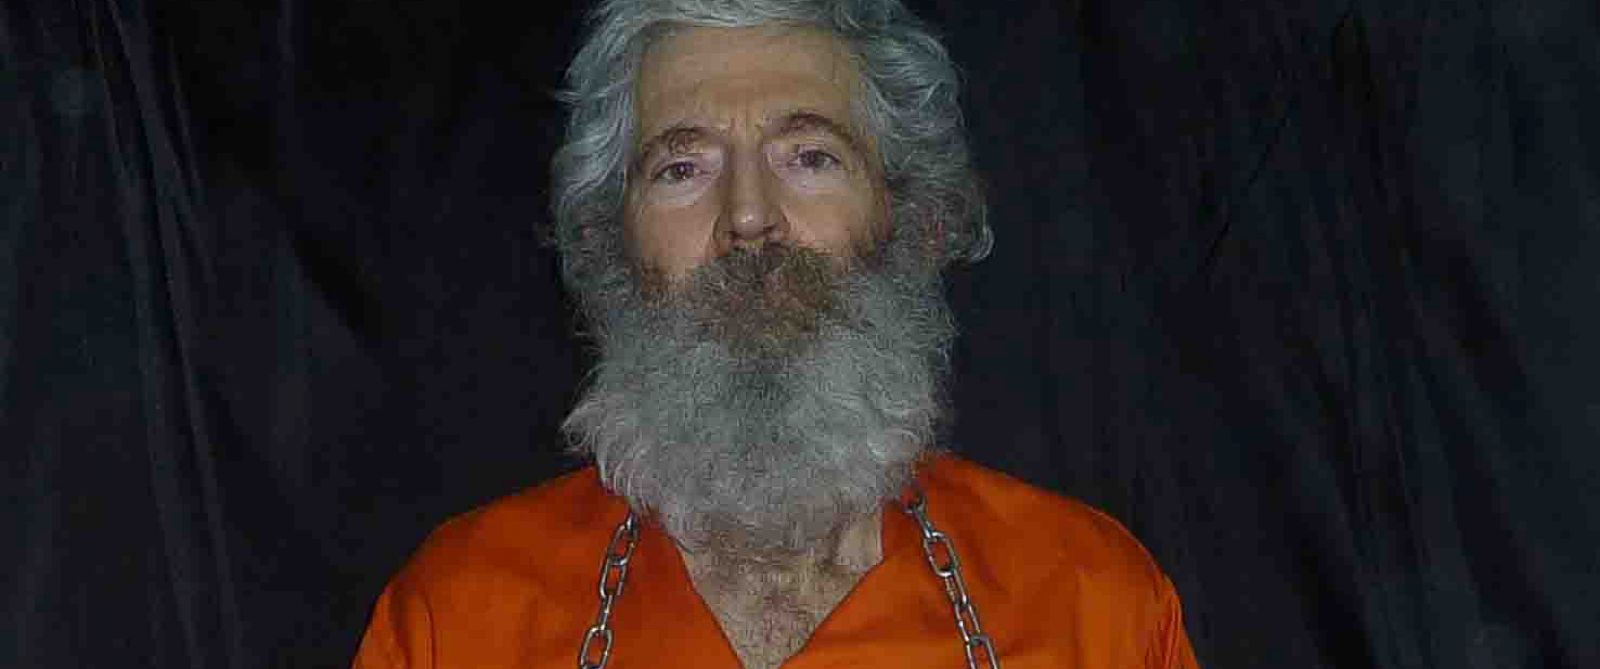 robert levinson fbi agent missing ap iran retired pledge israel update hostage despite ex info play